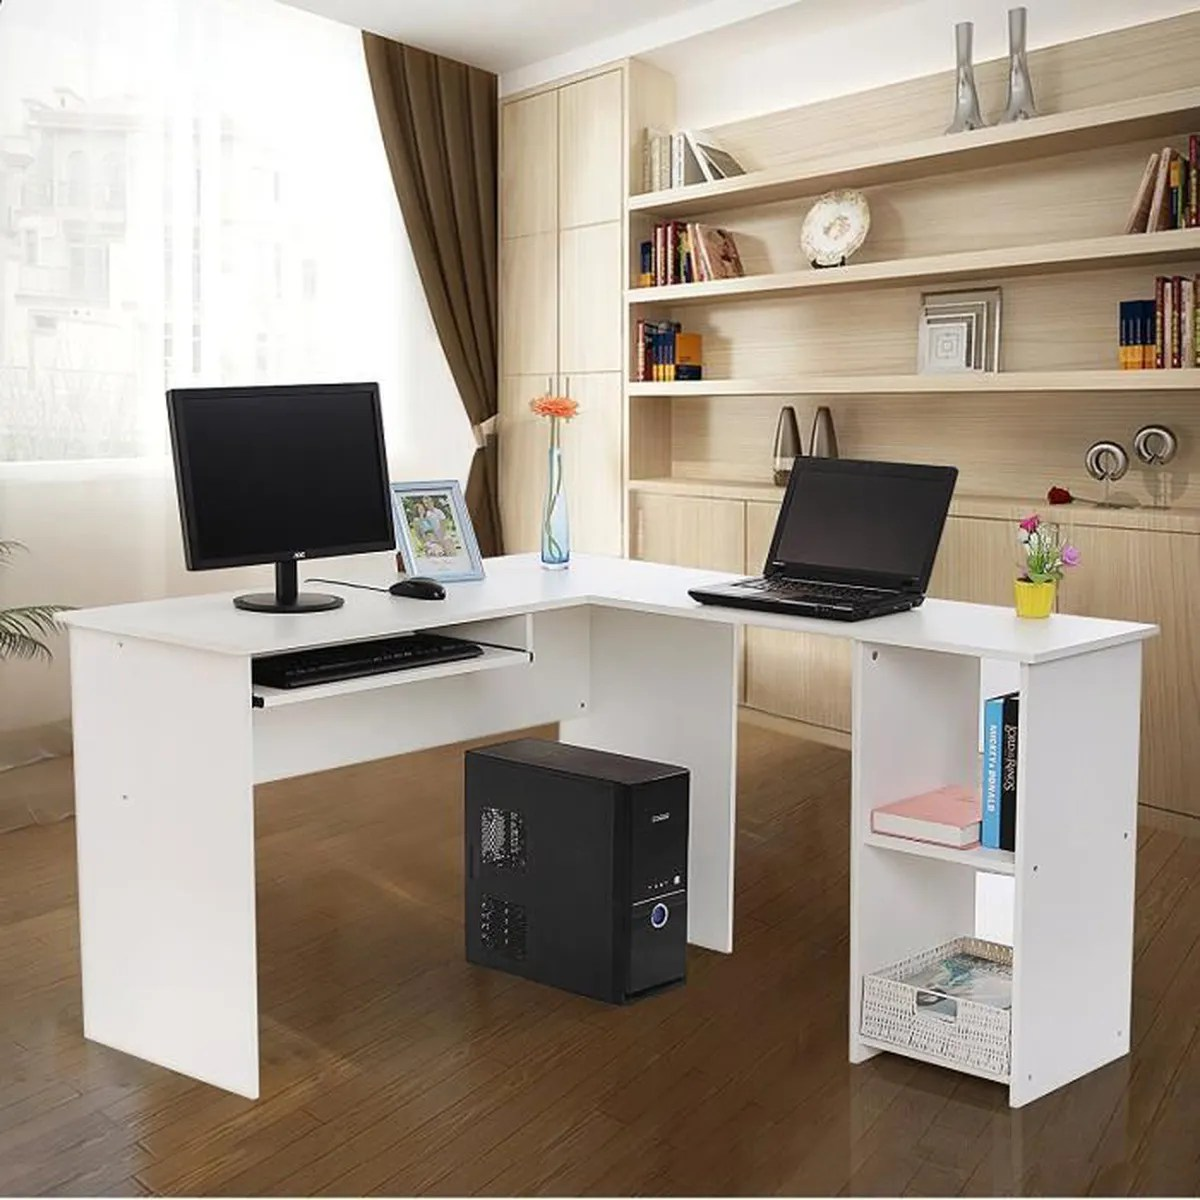 Tablette Bureau Superbe Bureau Informatique Blanc Avec Tablette Co